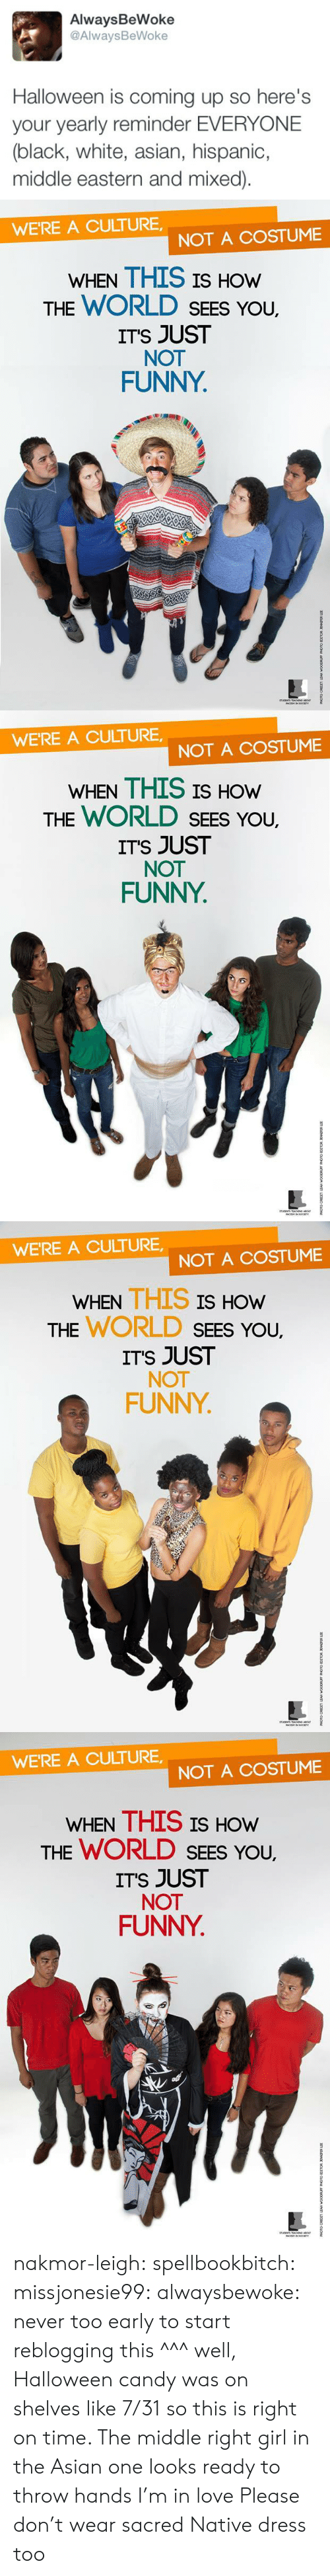 sacred: AlwaysBeWoke  @AlwaysBeWoke  Halloween is coming up so here's  your yearly reminder EVERYONE  (black, white, asian, hispanic,  middle eastern and mixed)   WE'RE A CULTURE  NOT A COSTUME  WHEN THIS IS HOW  THE WORLD SEES YoU.  ITS JUST  NOT  FUNNY   WE'RE A CULTURE  NOT A COSTUME  WHEN THIS IS HOW  THE WORLD SEES YoU.  ITS JUST  NOT  FUNNY   WE'RE A CULTURE,  NOT A COSTUME  WHEN THIS IS  HOW  THE WORLD SEEs You,  ITS JUST  NOT  FUNNY   WE'RE A CULTURE  NOT A COSTUME  WHEN THIS IS HOw  THE WORLD SEES You,  ITS JUST  NOT  FUNNY nakmor-leigh: spellbookbitch:  missjonesie99:  alwaysbewoke:  never too early to start reblogging this  ^^^ well, Halloween candy was on shelves like 7/31 so this is right on time.    The middle right girl in the Asian one looks ready to throw hands I'm in love   Please don't wear sacred Native dress too